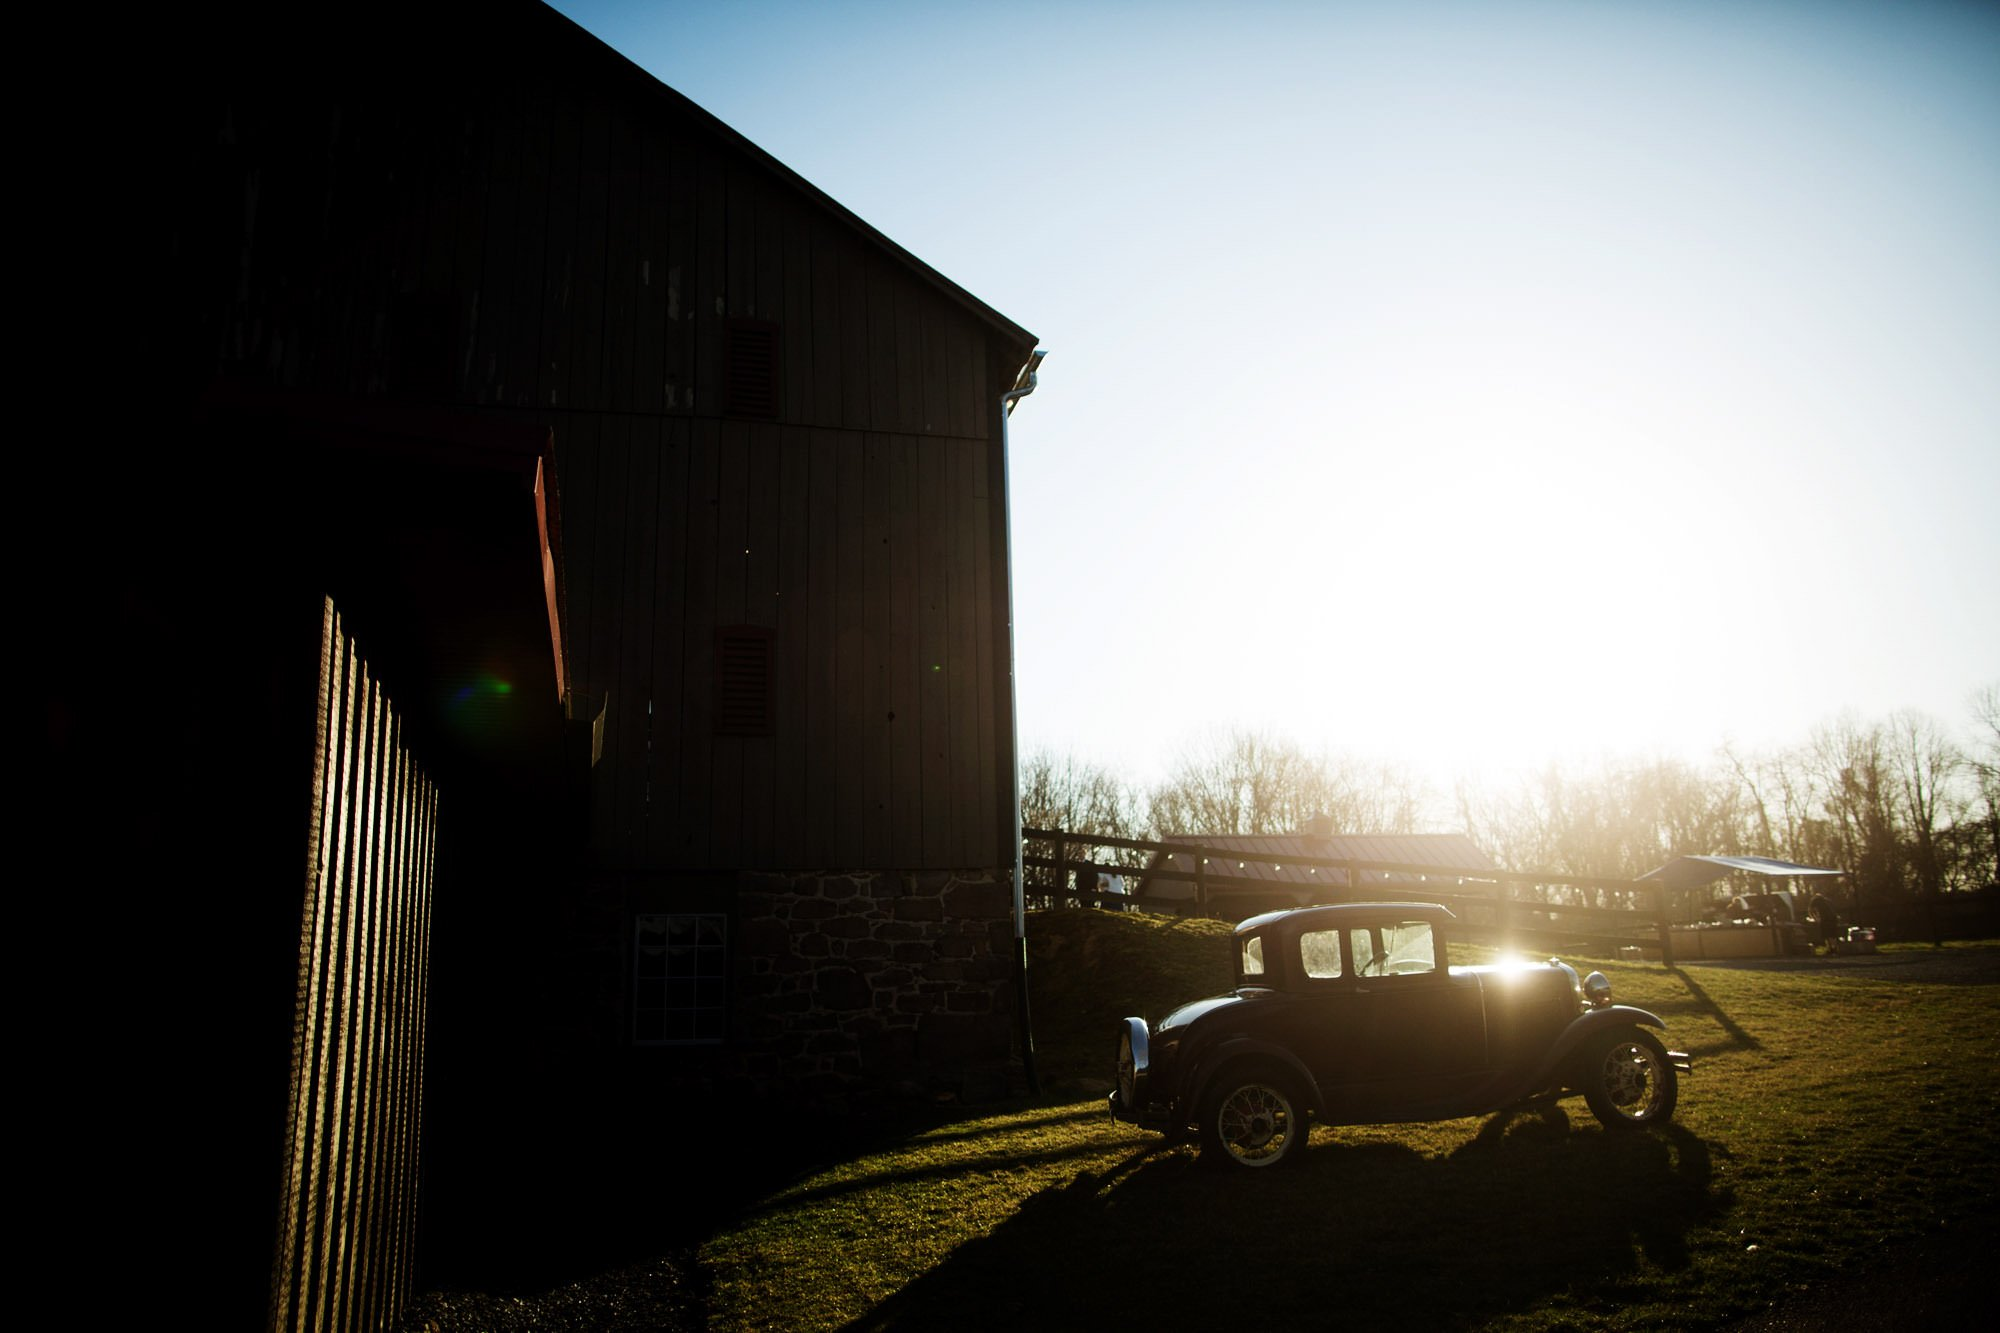 The sun sets on the antique car on the grounds of Riverside on the Potomac.